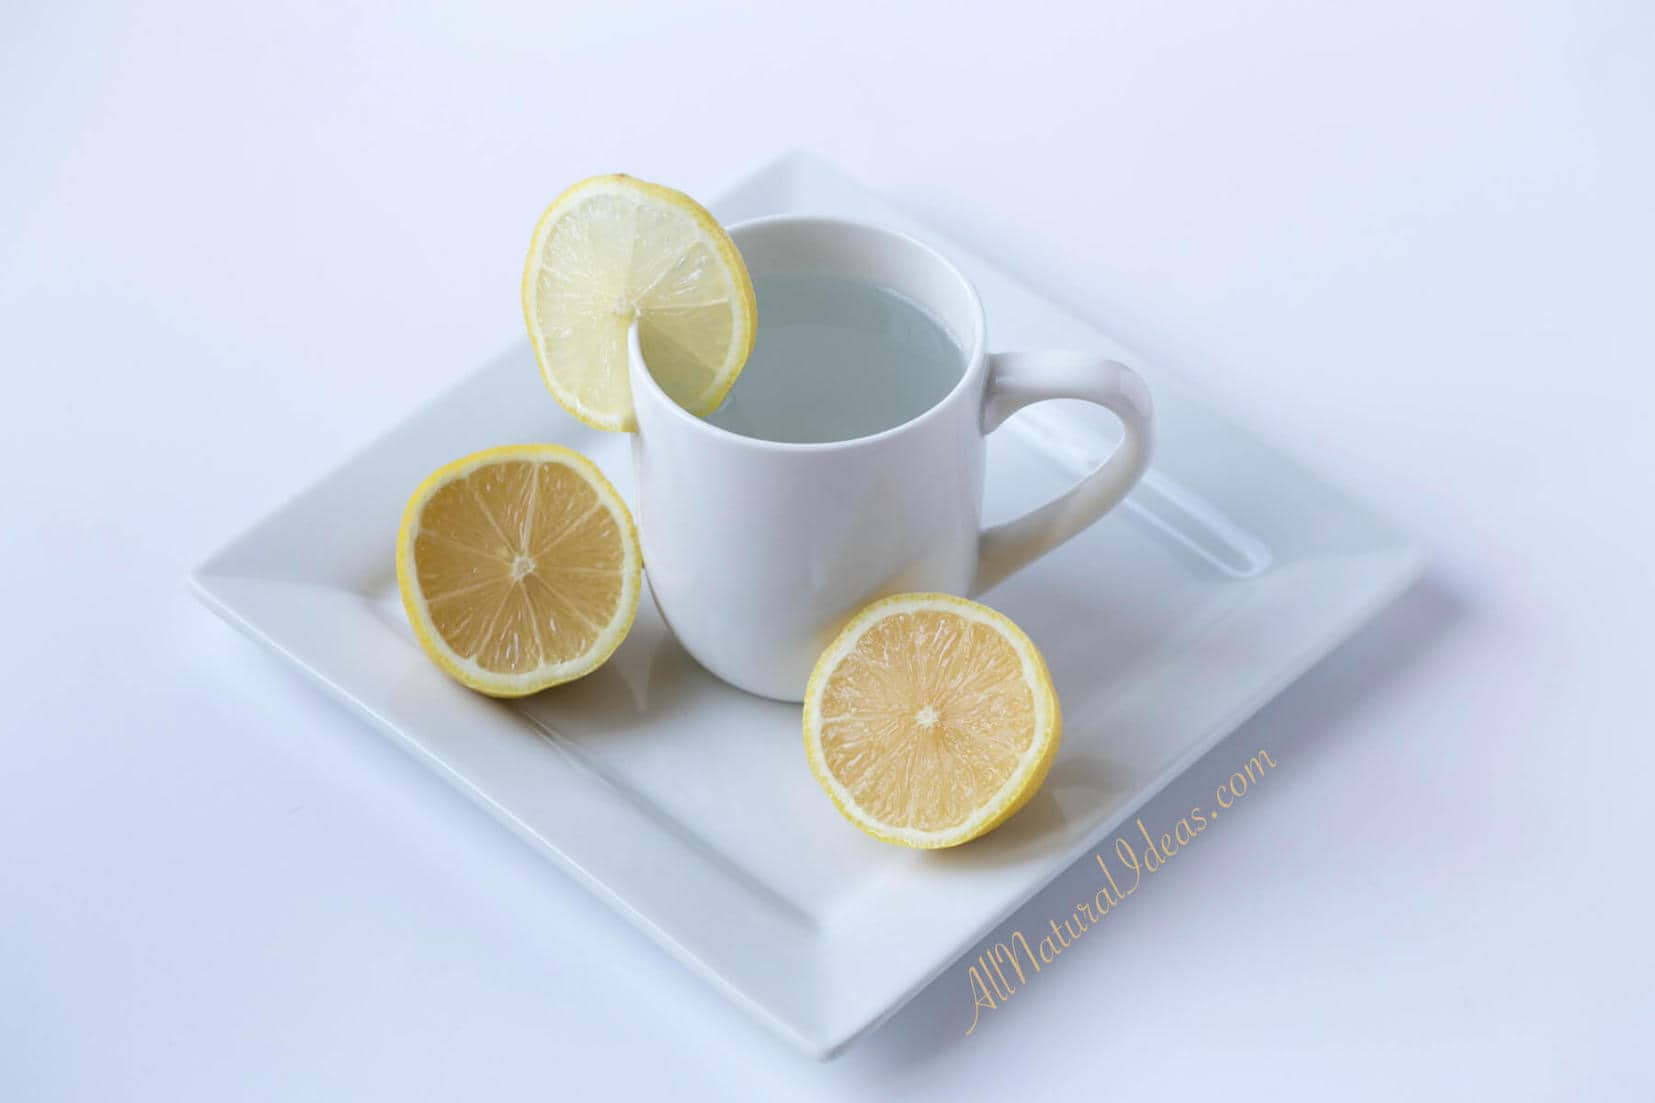 Have you heard of morning lemon water benefits? There are several benefits of drinking lemon water each morning. Try this easy drink to start off your day!